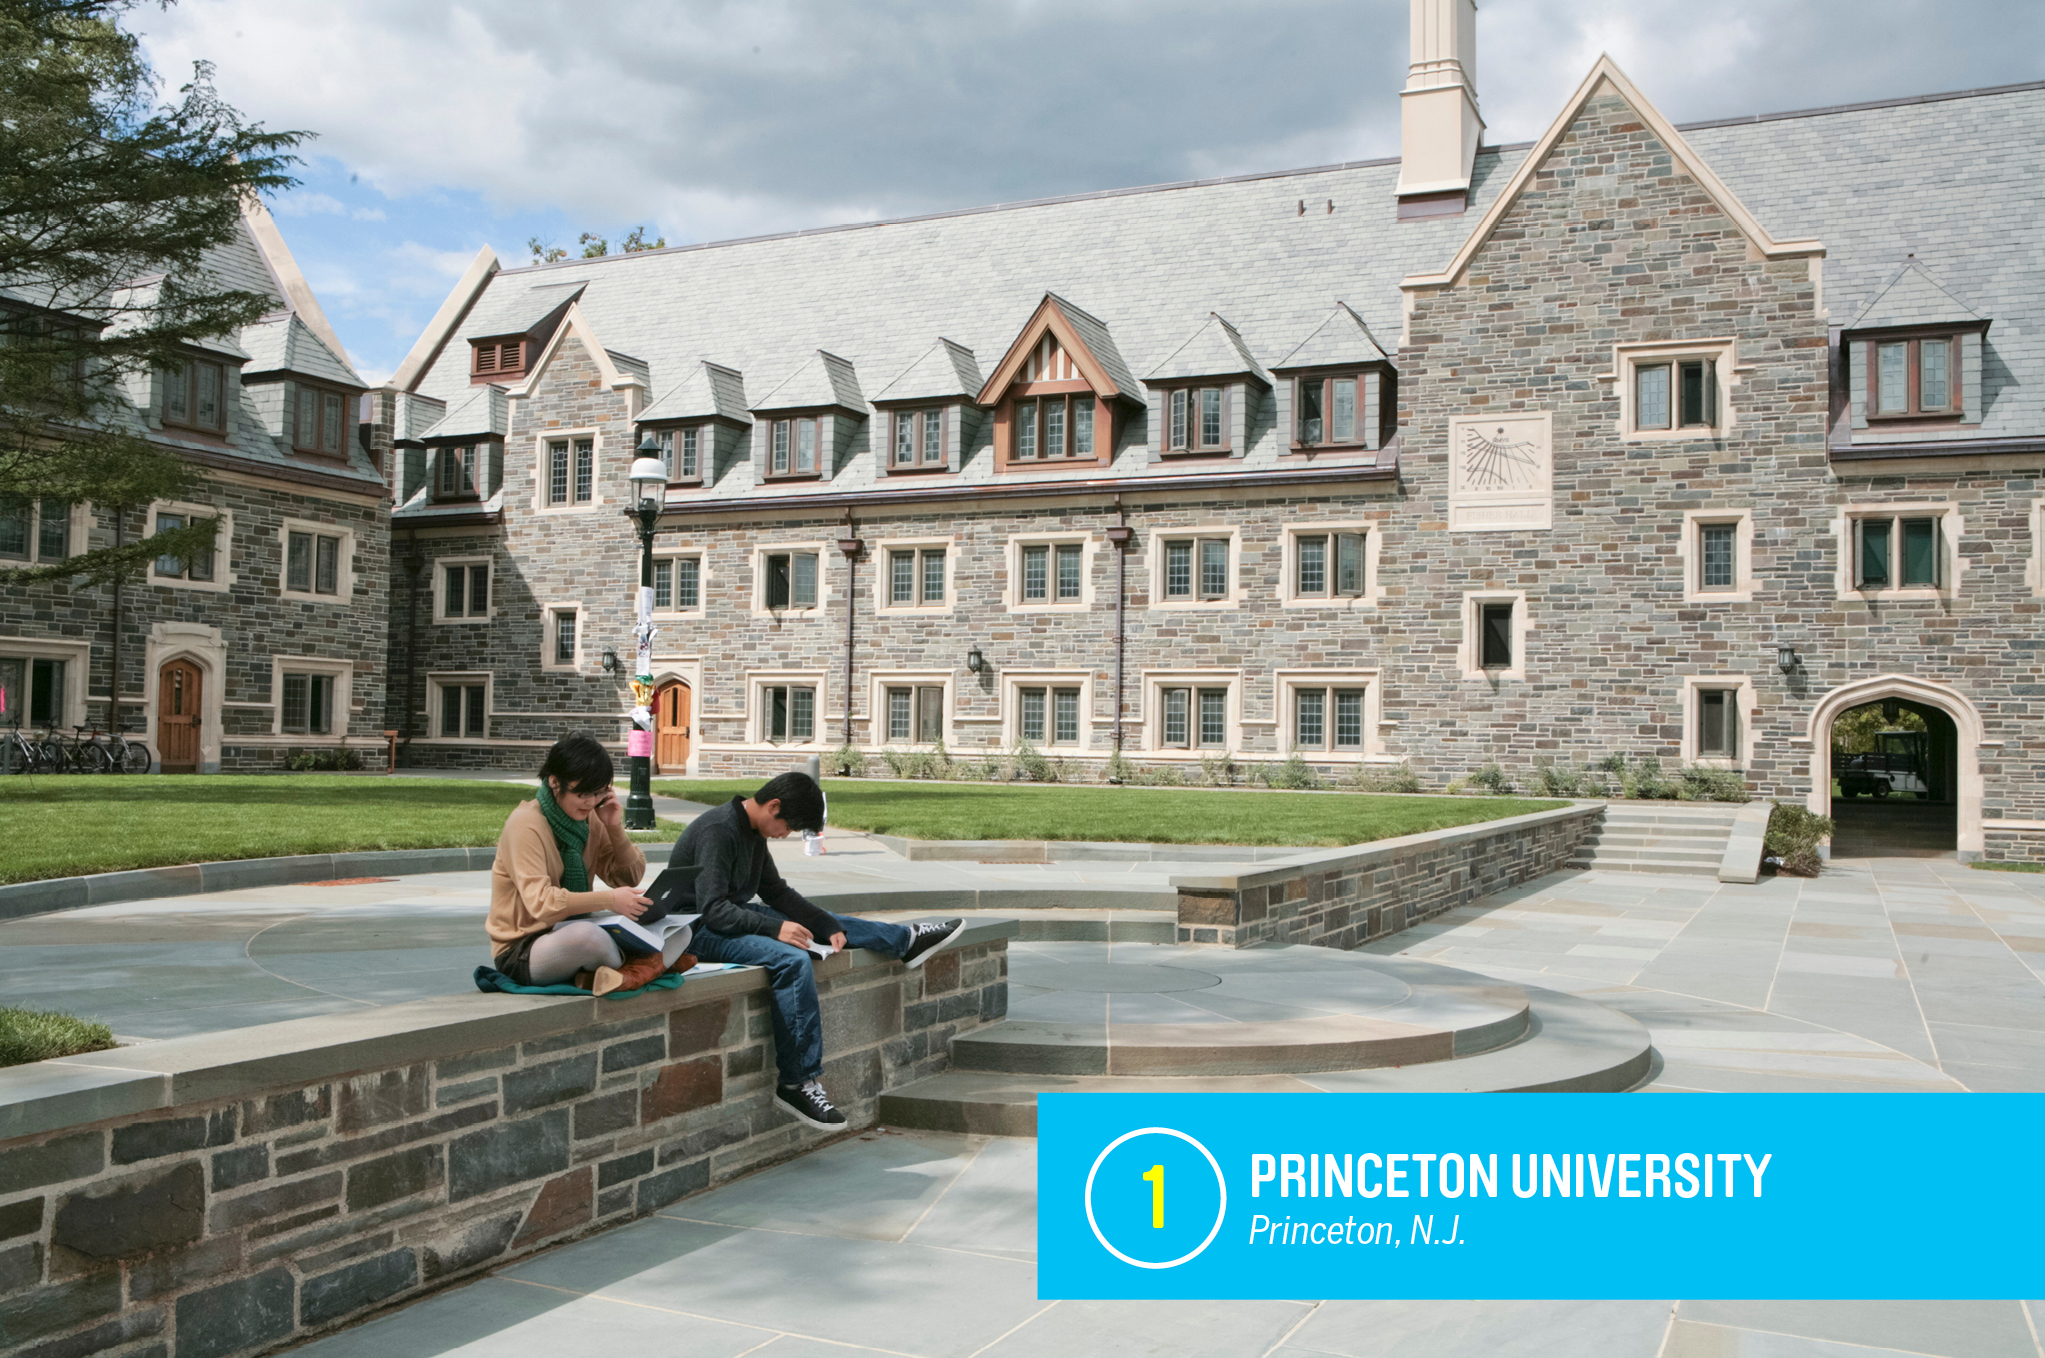 """<a href=""""https://money.com/best-colleges/profile/princeton-university/"""" target=""""_blank"""">Princeton University's</a> generous financial aid makes it, according to Money's analysis, the most affordable member of the Ivy League. The school gives out such large grants to the six in 10 families who qualify (families earning less than $250,000 generally get some aid) that more than 83% of students graduate without any debt. <a href=""""https://money.com/best-colleges/profile/princeton-university/"""" target=""""_blank"""">FULL PROFILE</a>"""